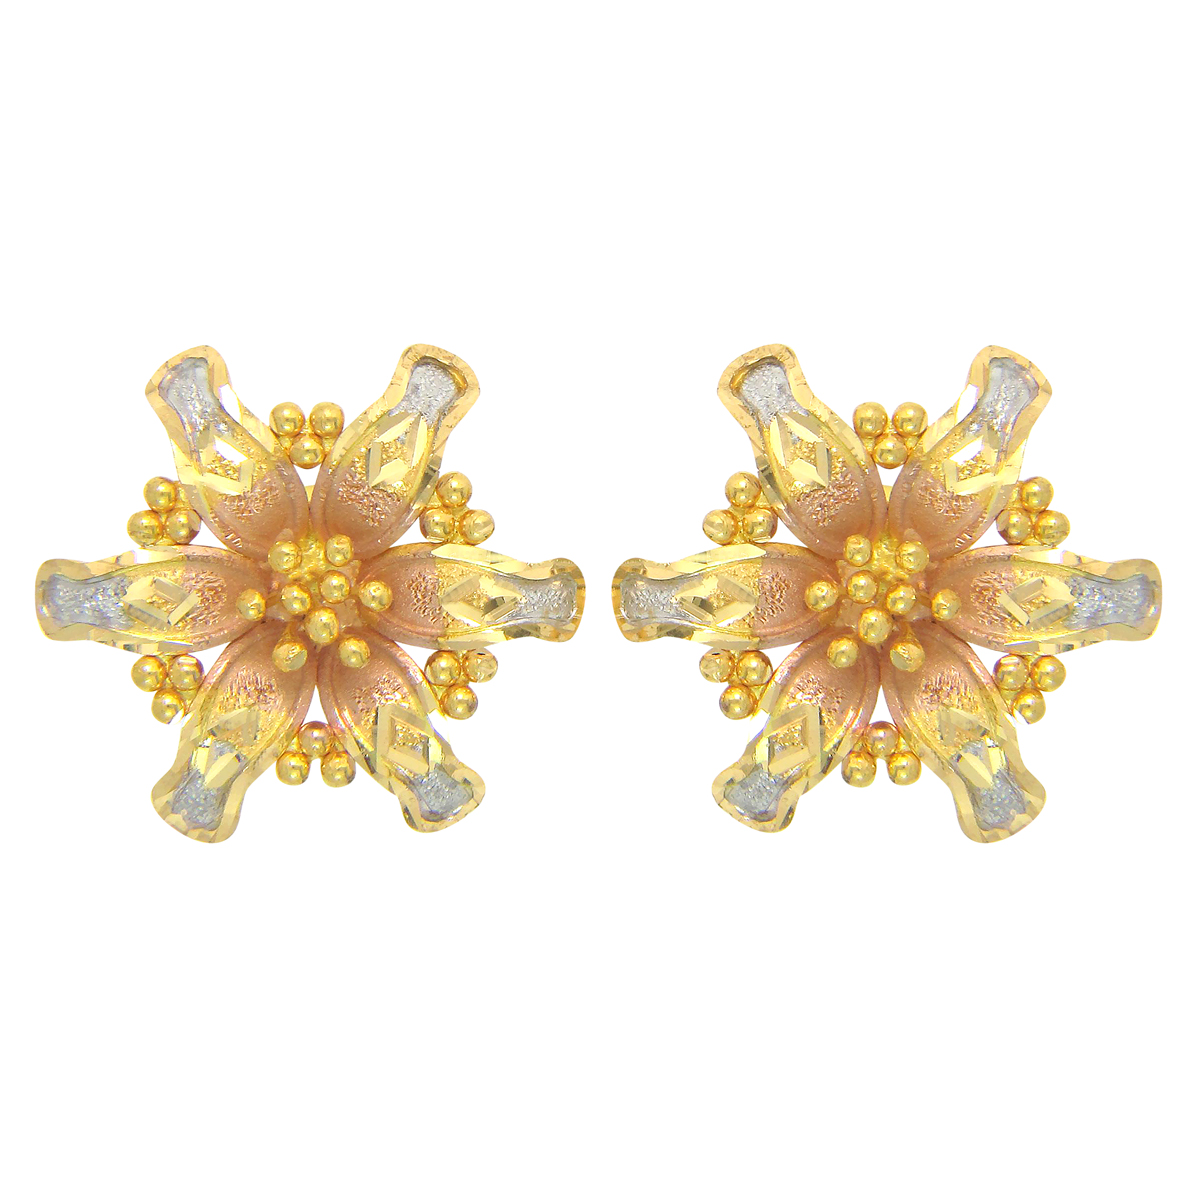 Popley 22Kt Gold Bandhan Earring - A92